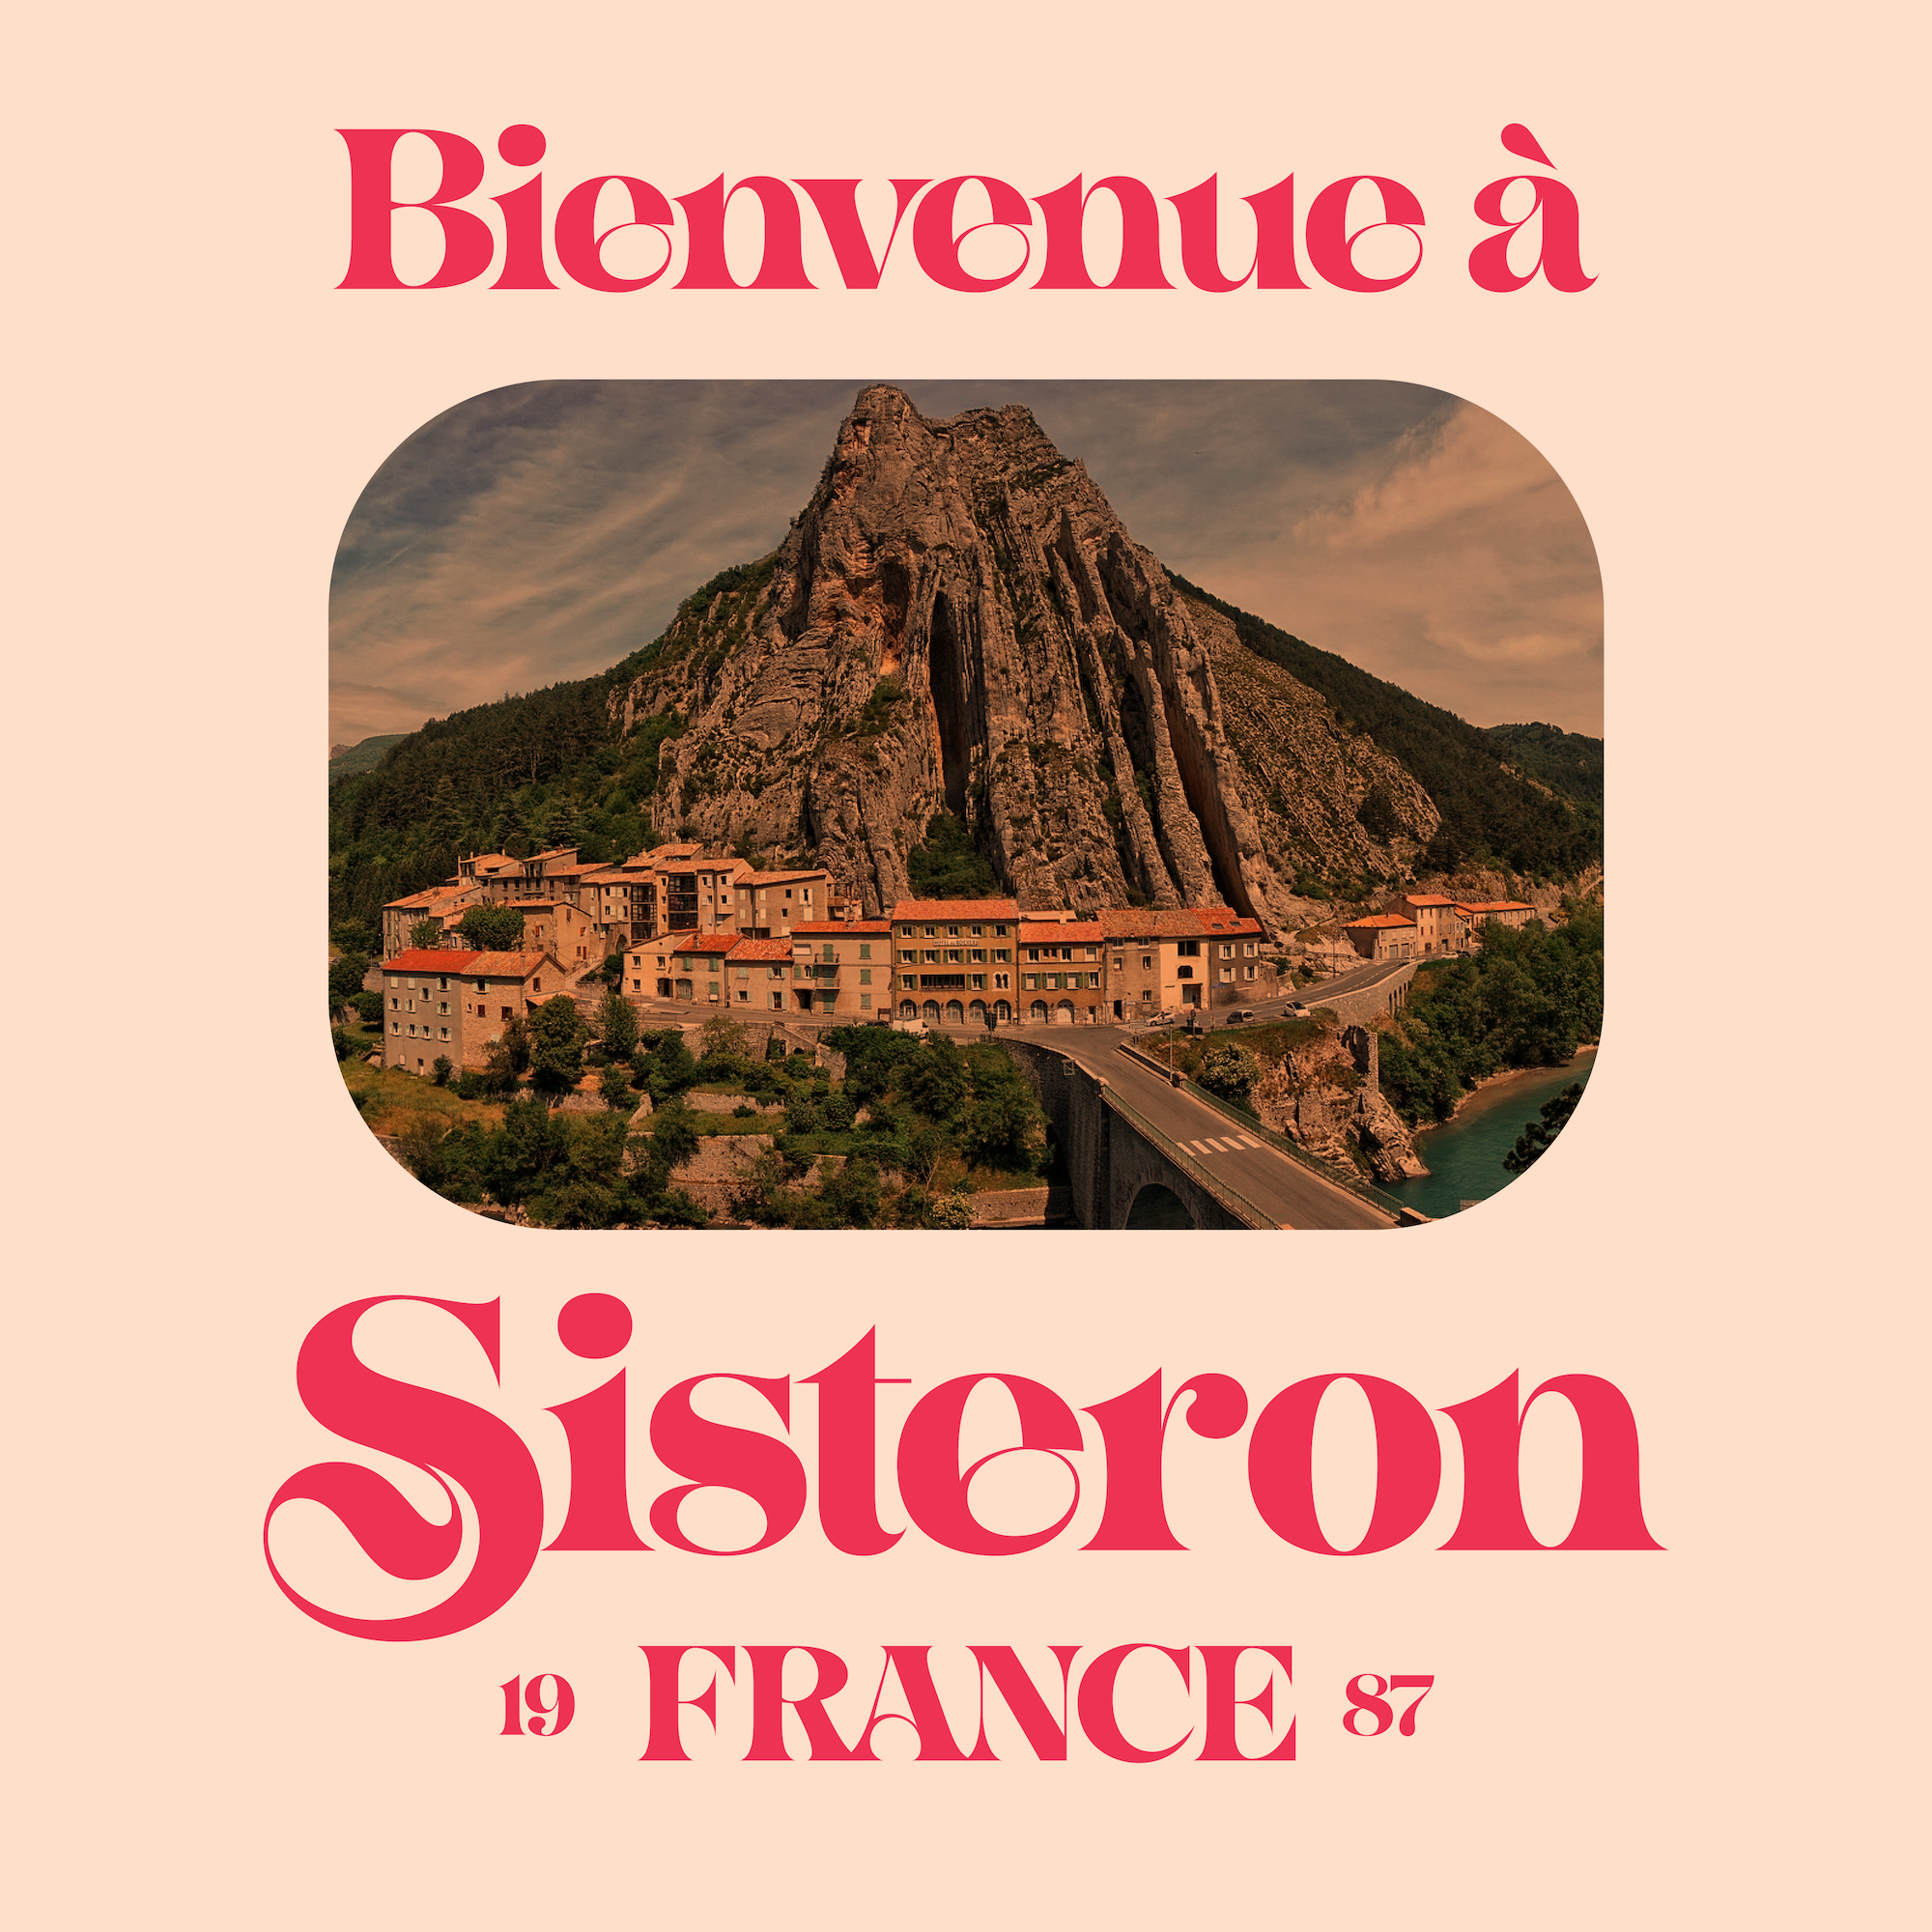 Sisteron, a new font designed by Simon Walker for Typeverything.com